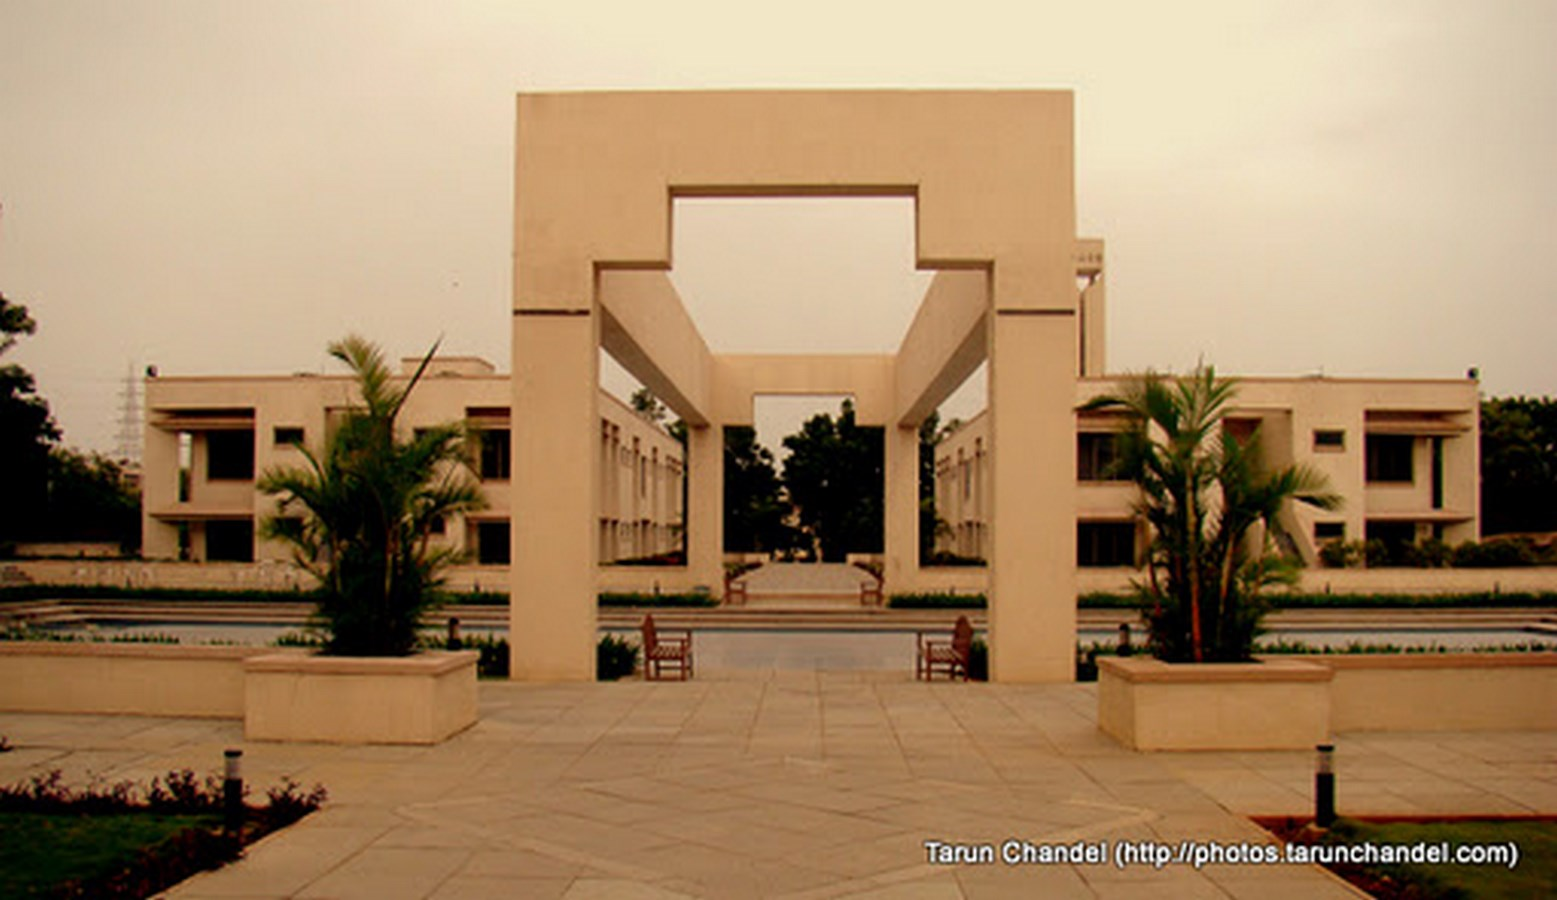 20 Iconic Projects By Hafeez Contractor - Indian School of Business